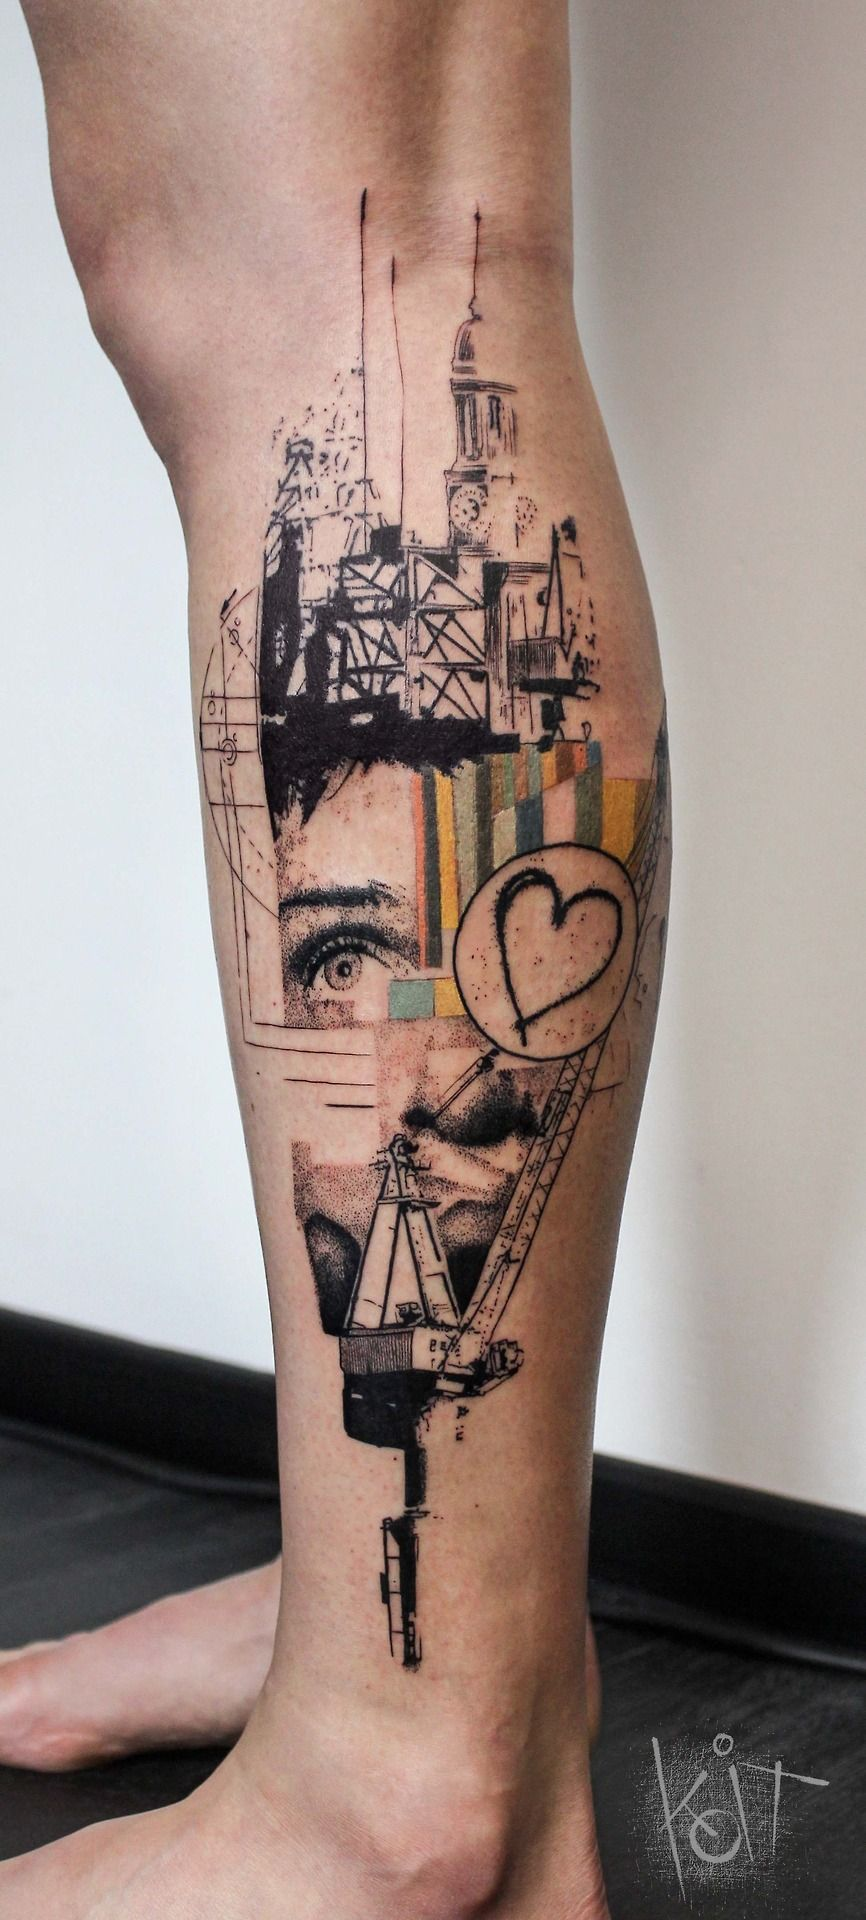 Hamburg theme leg tattoo. Done by KOit Tattoo, Berlin ... Xoil Sleeve Tattoo